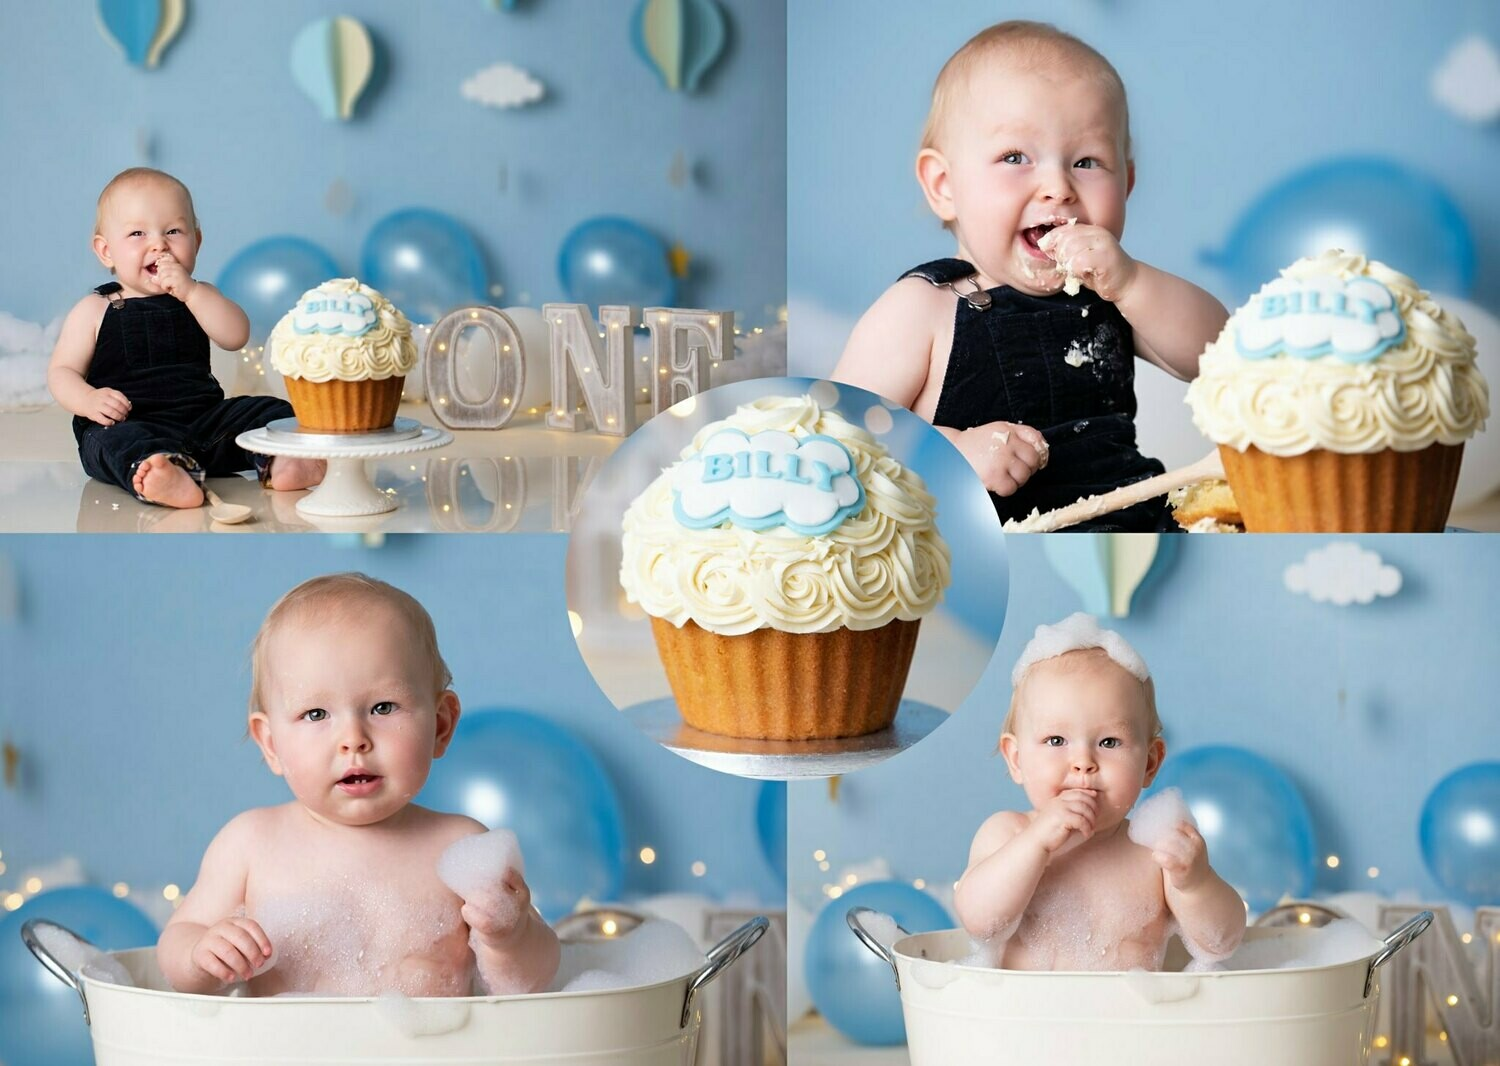 CAKE SMASH PHOTOSHOOT BASIC PACKAGE